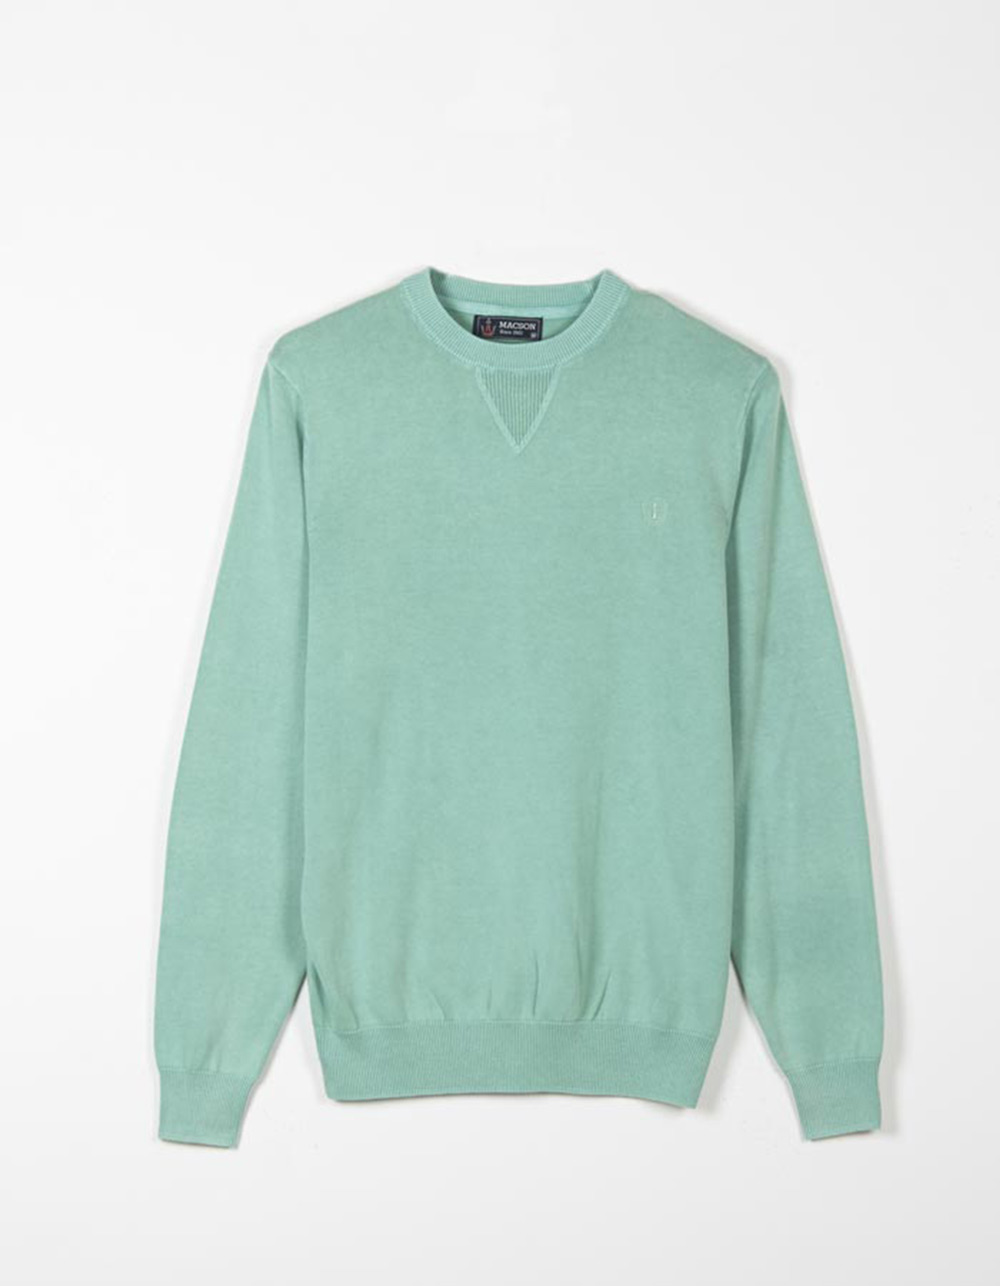 Mint neck box Jersey - Backside